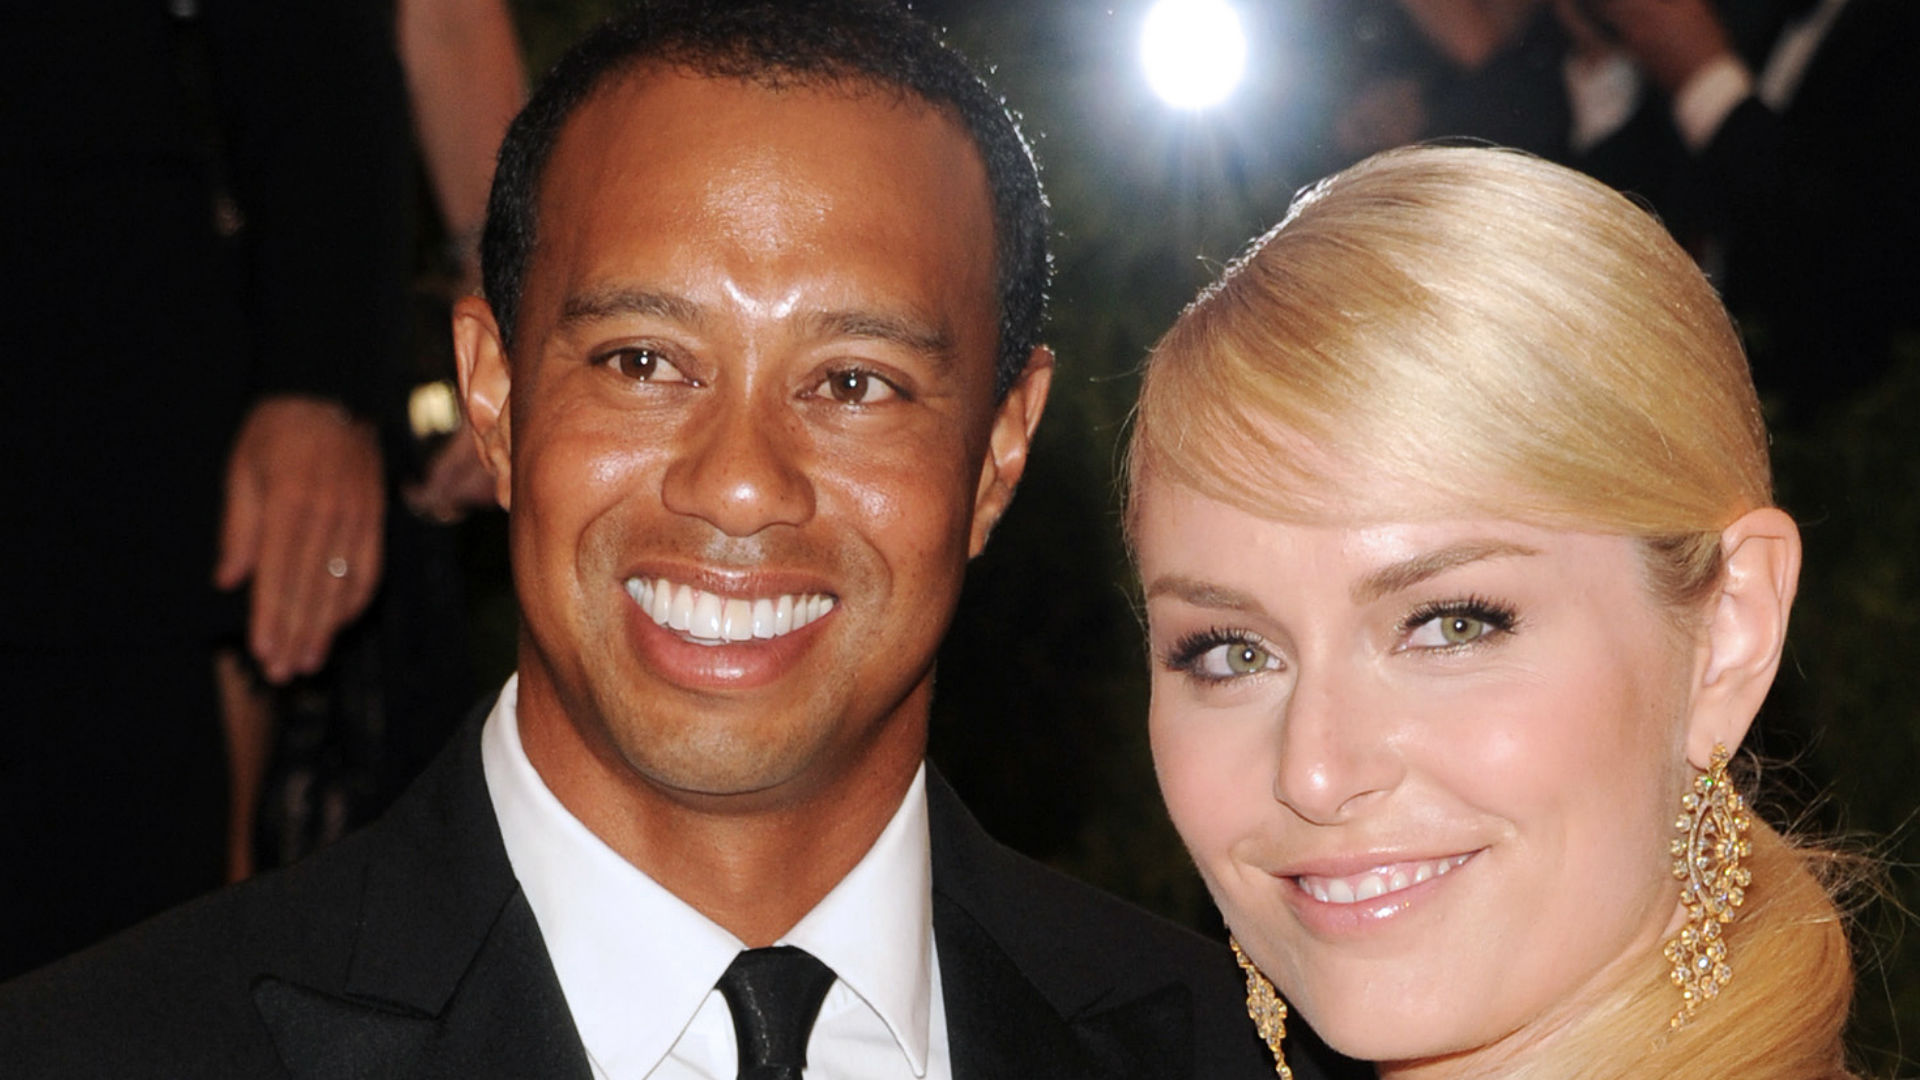 Tiger Woods' ex-wife and current girlfriend are BFFs ...